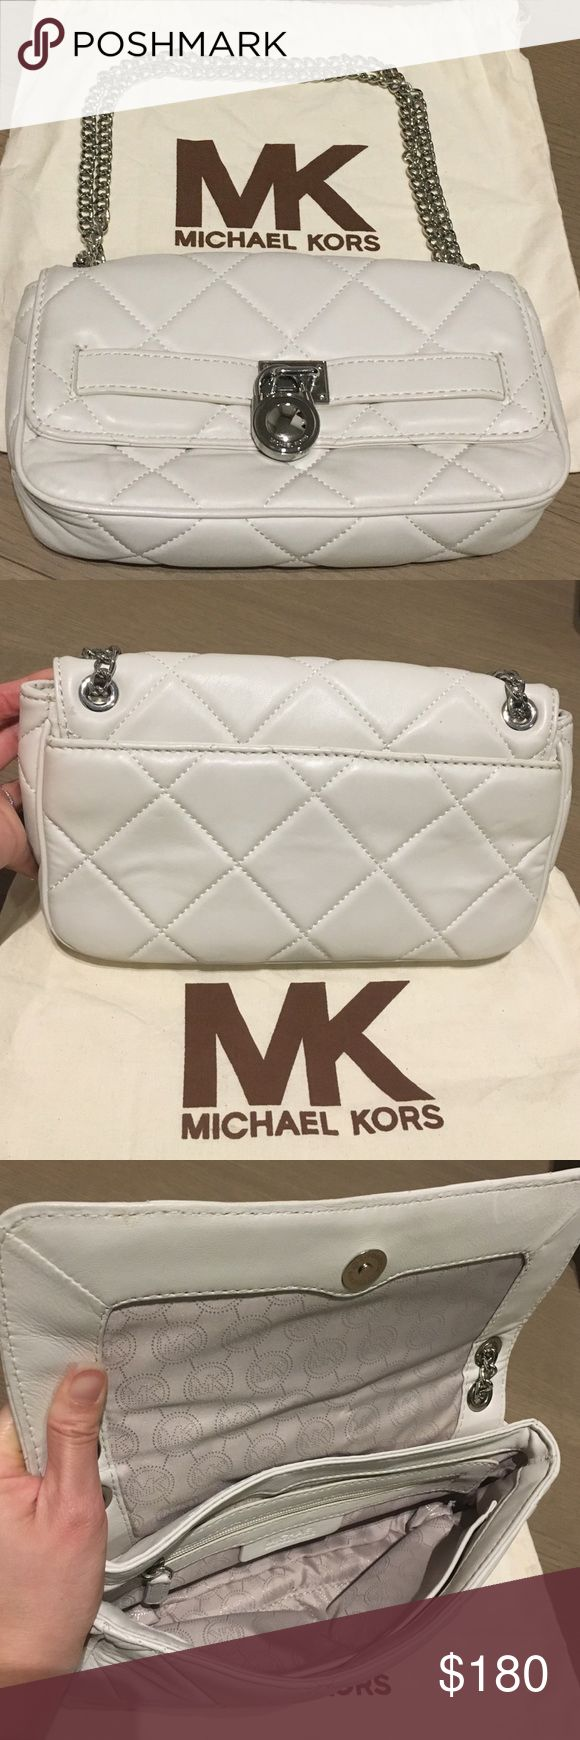 MICHAEL KORS QUILTED SHOULDER BAG MICHAEL KORS QUILTED SHOULDER BAG. WORN ONCE. STILL IN GREAT CONDITION. SUPER CLEAN ON THE INSIDE. COMES WITH DUST BAG Michael Kors Bags Shoulder Bags